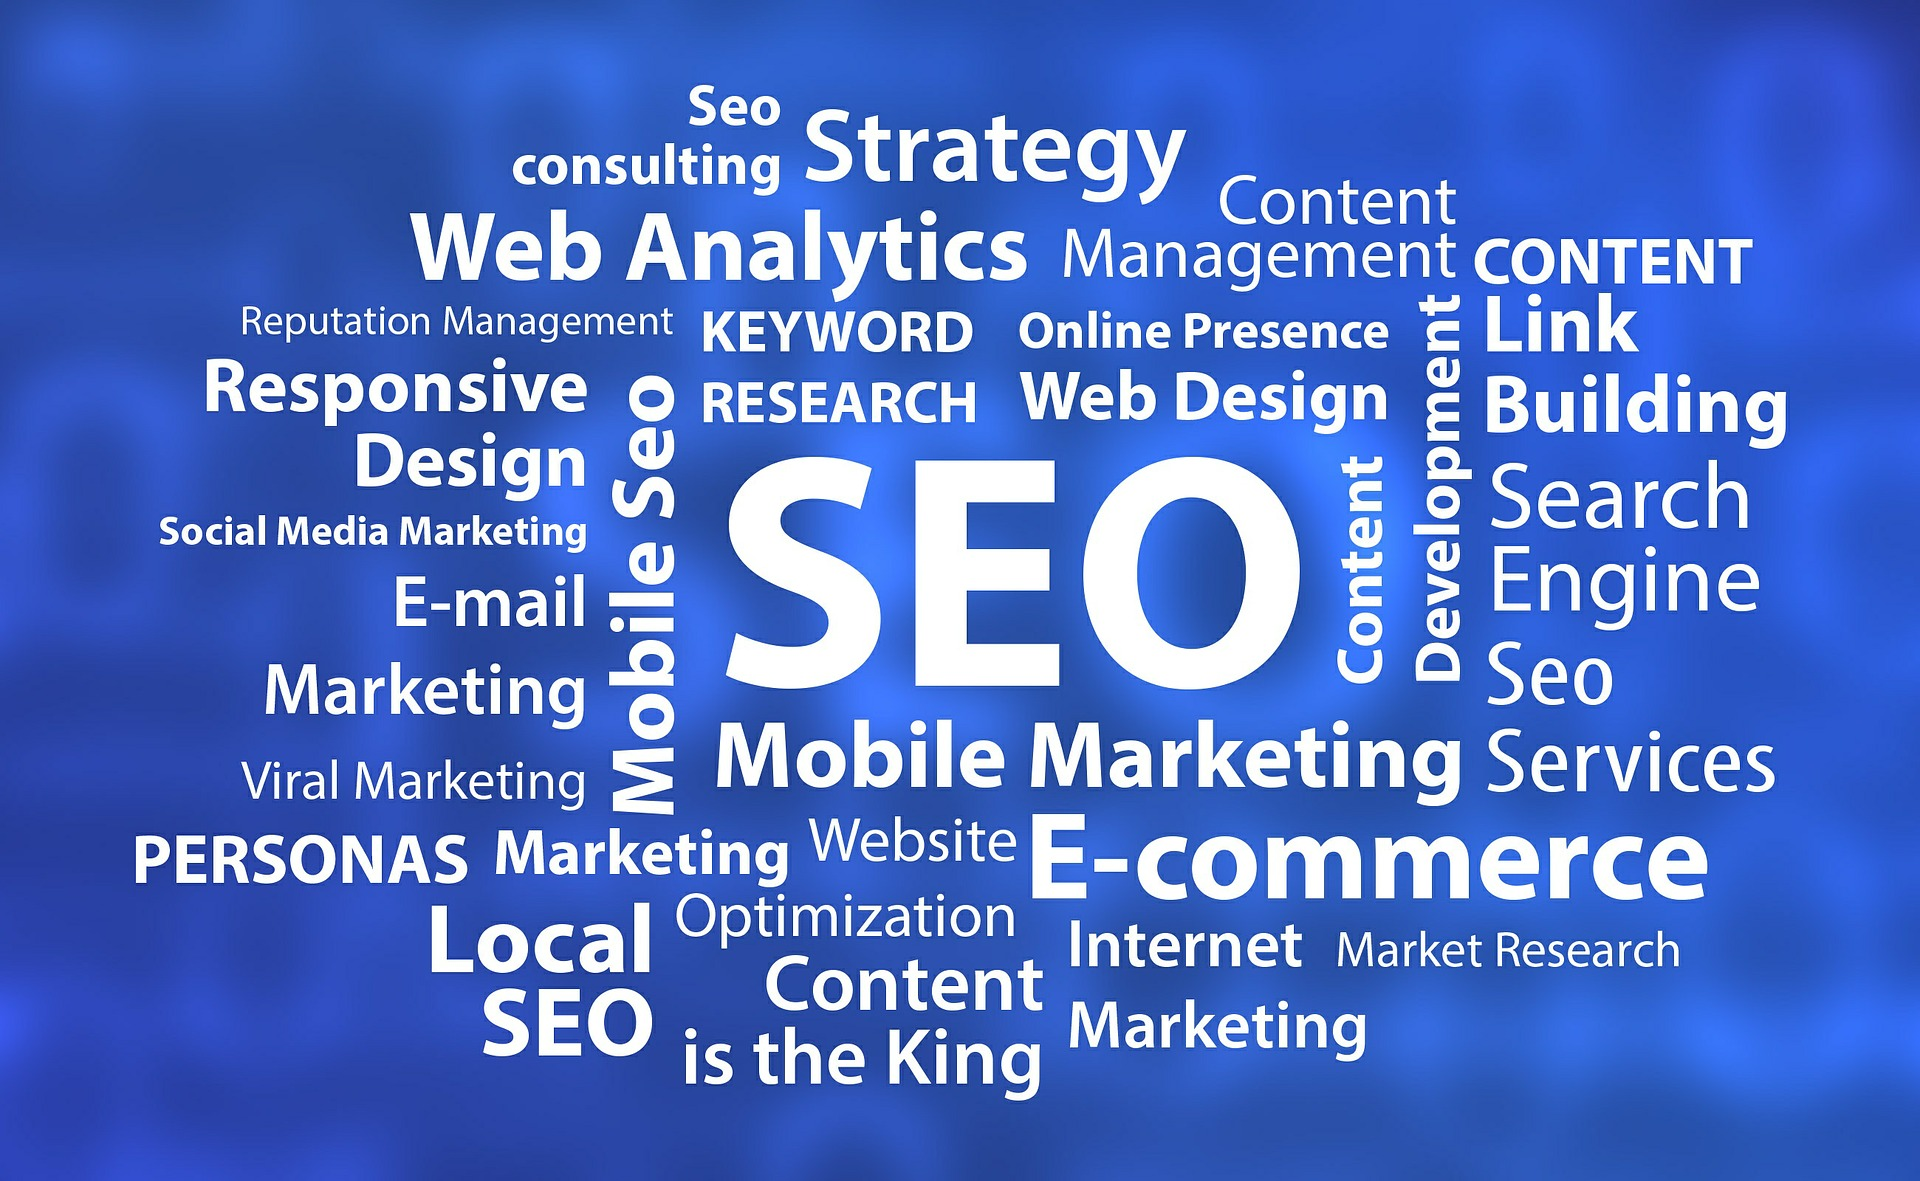 analysis your website,  provide report and fix problem SEO